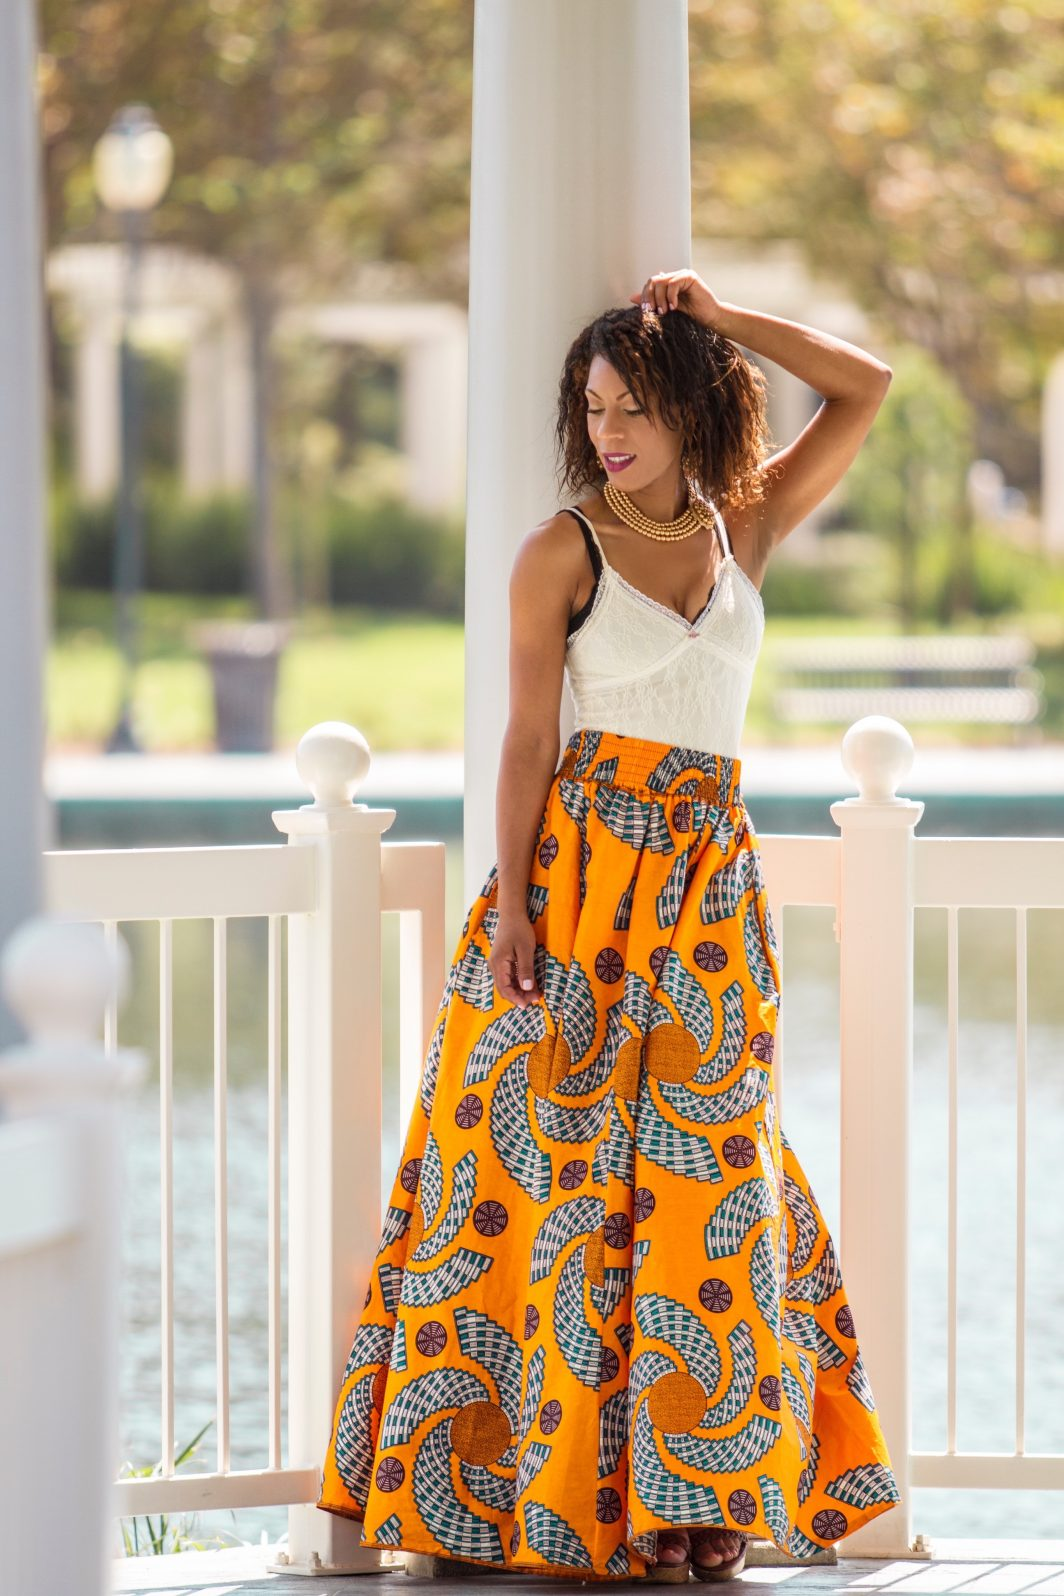 65f4f6f3e8 High Waisted African Print Maxi Skirt with Side Pockets | Come Style ...